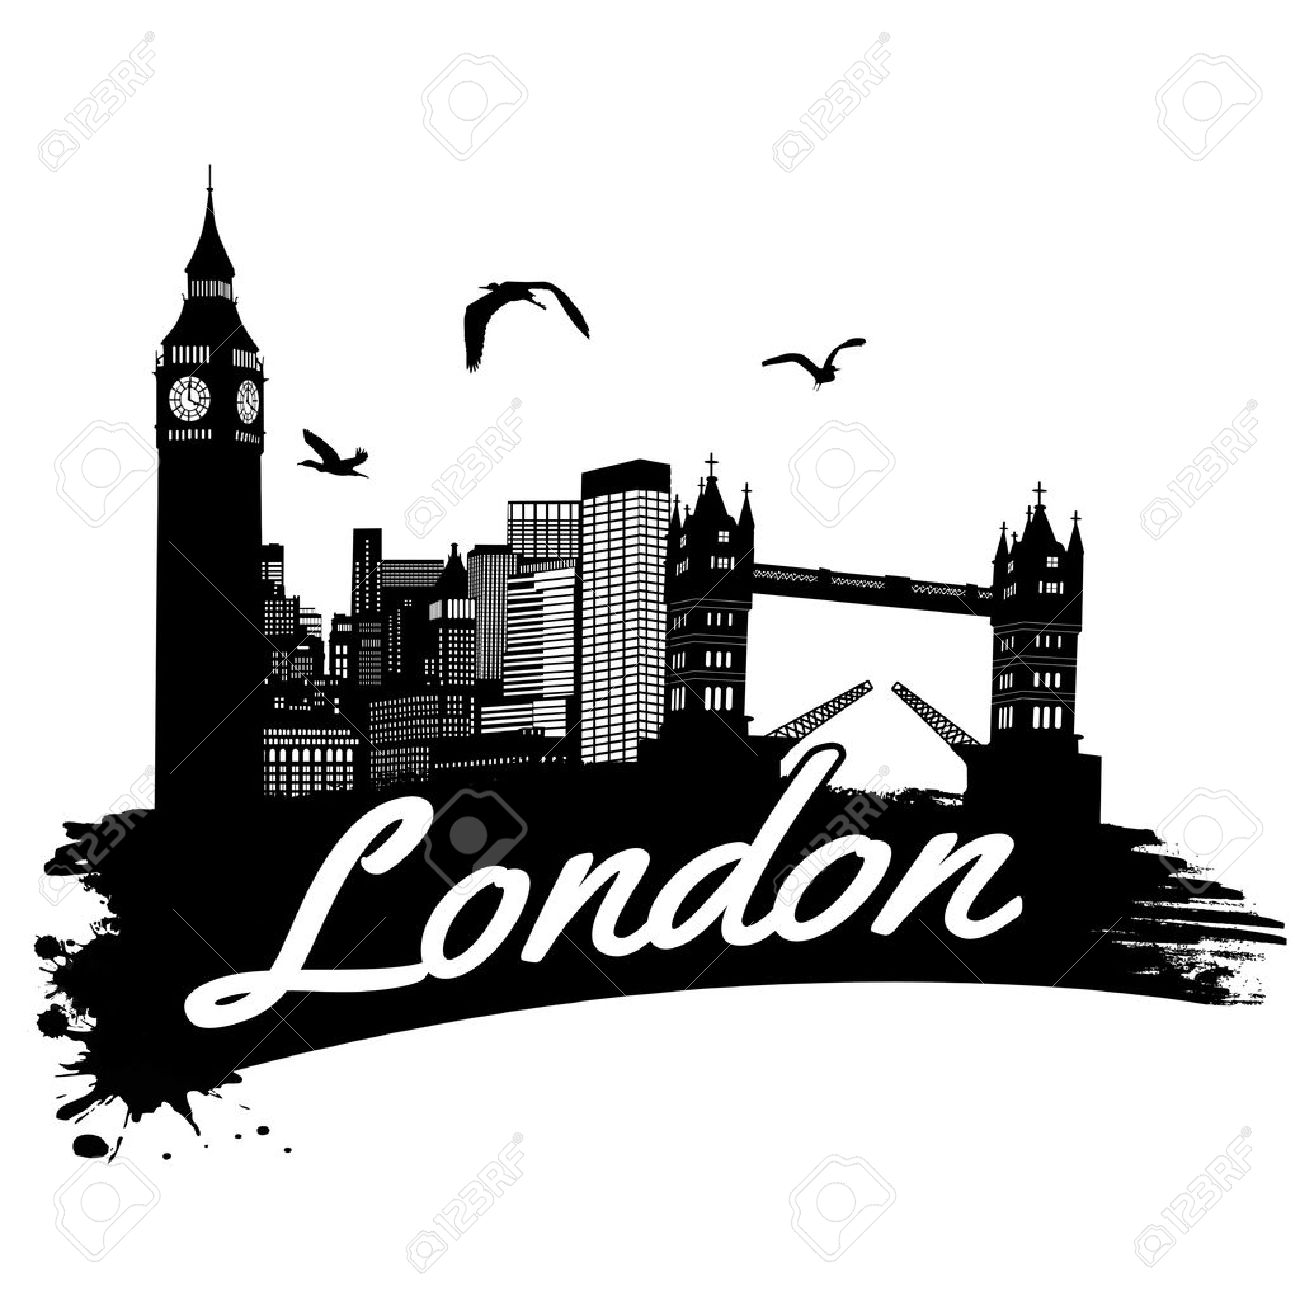 London in vitage style poster, vector illustration Stock Vector - 24005070